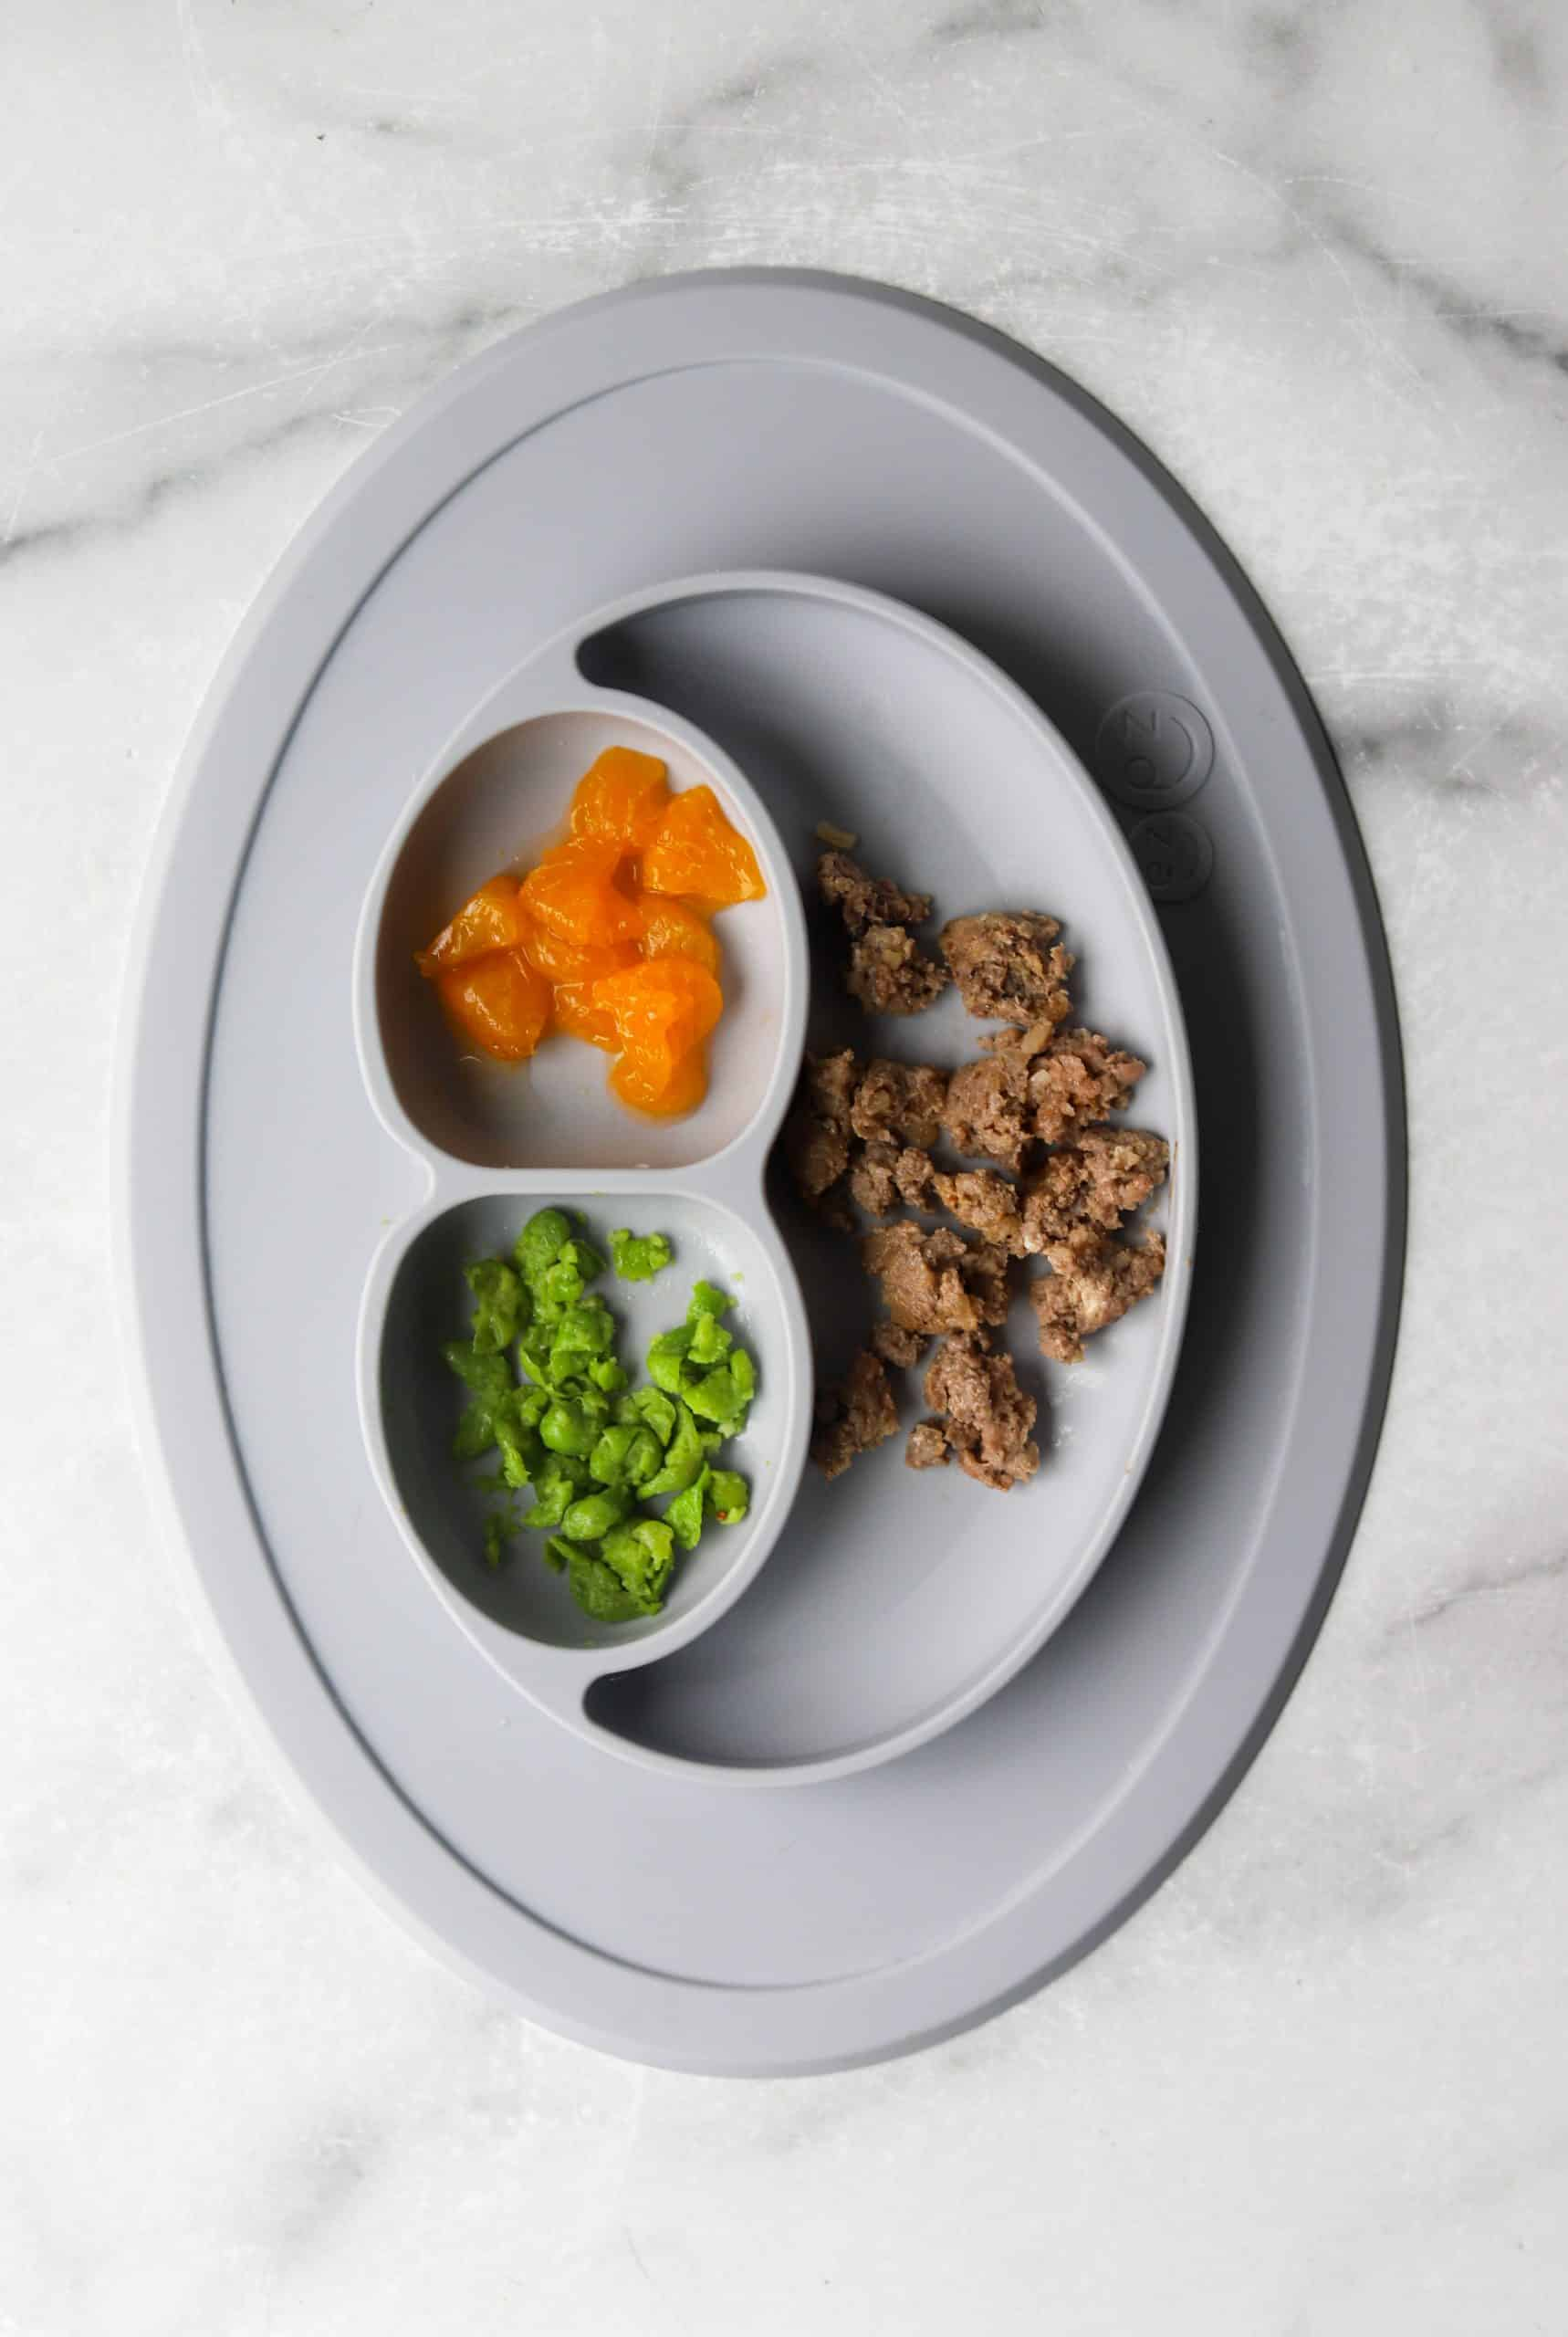 A plate of meatloaf, peas and mandarin oranges prepared for a toddler.